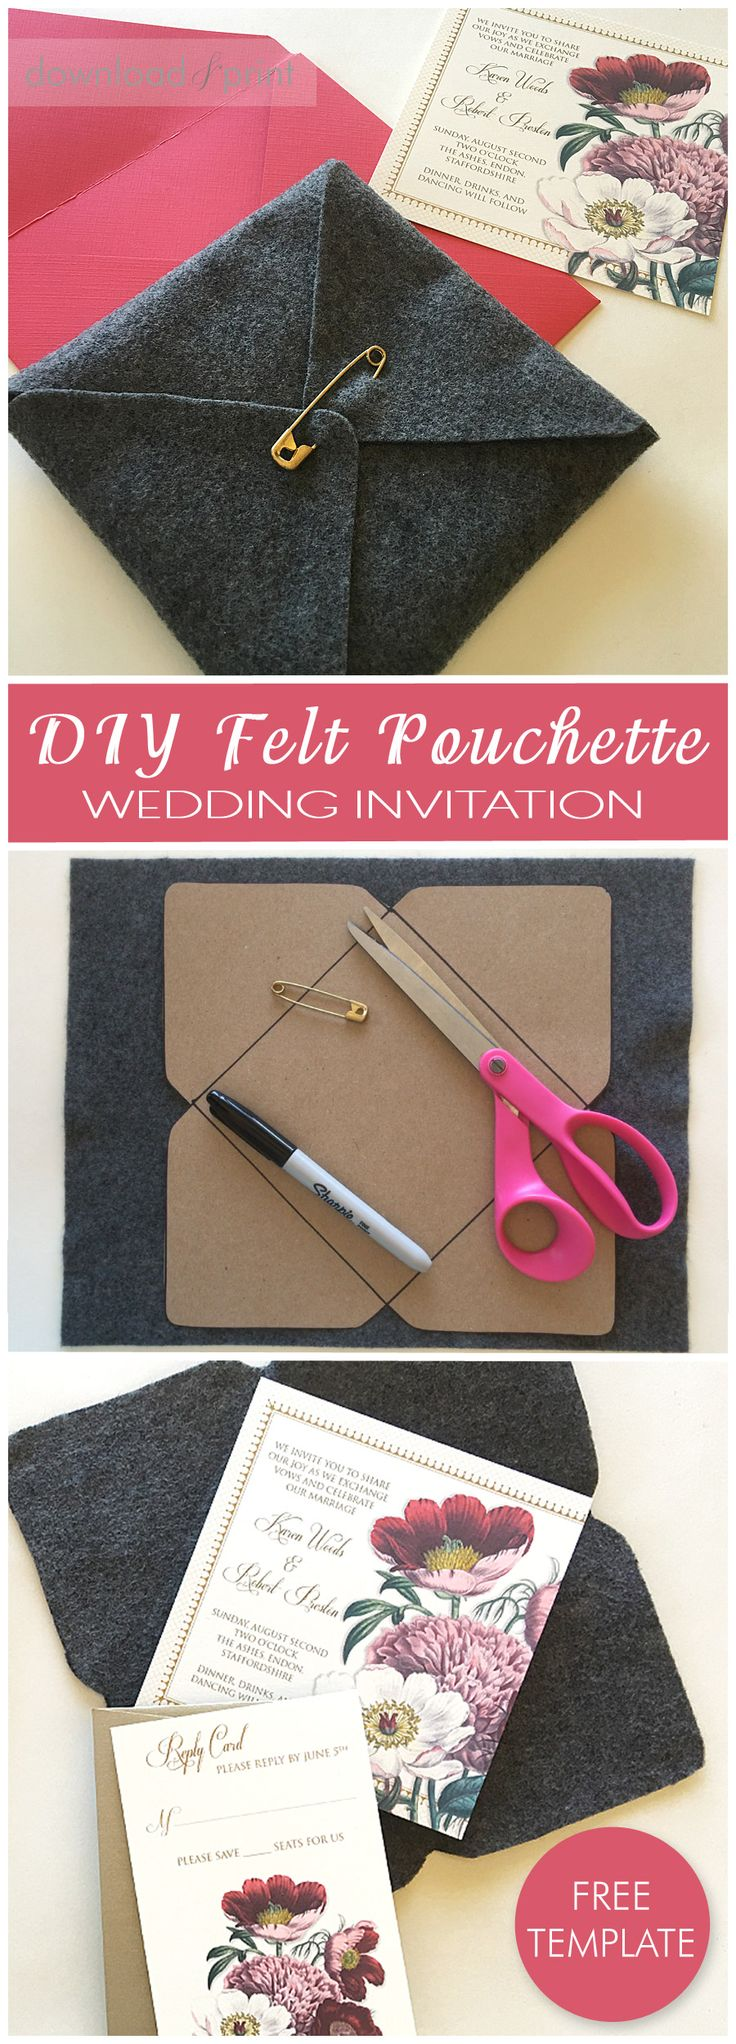 Grab the free pouchette template and make